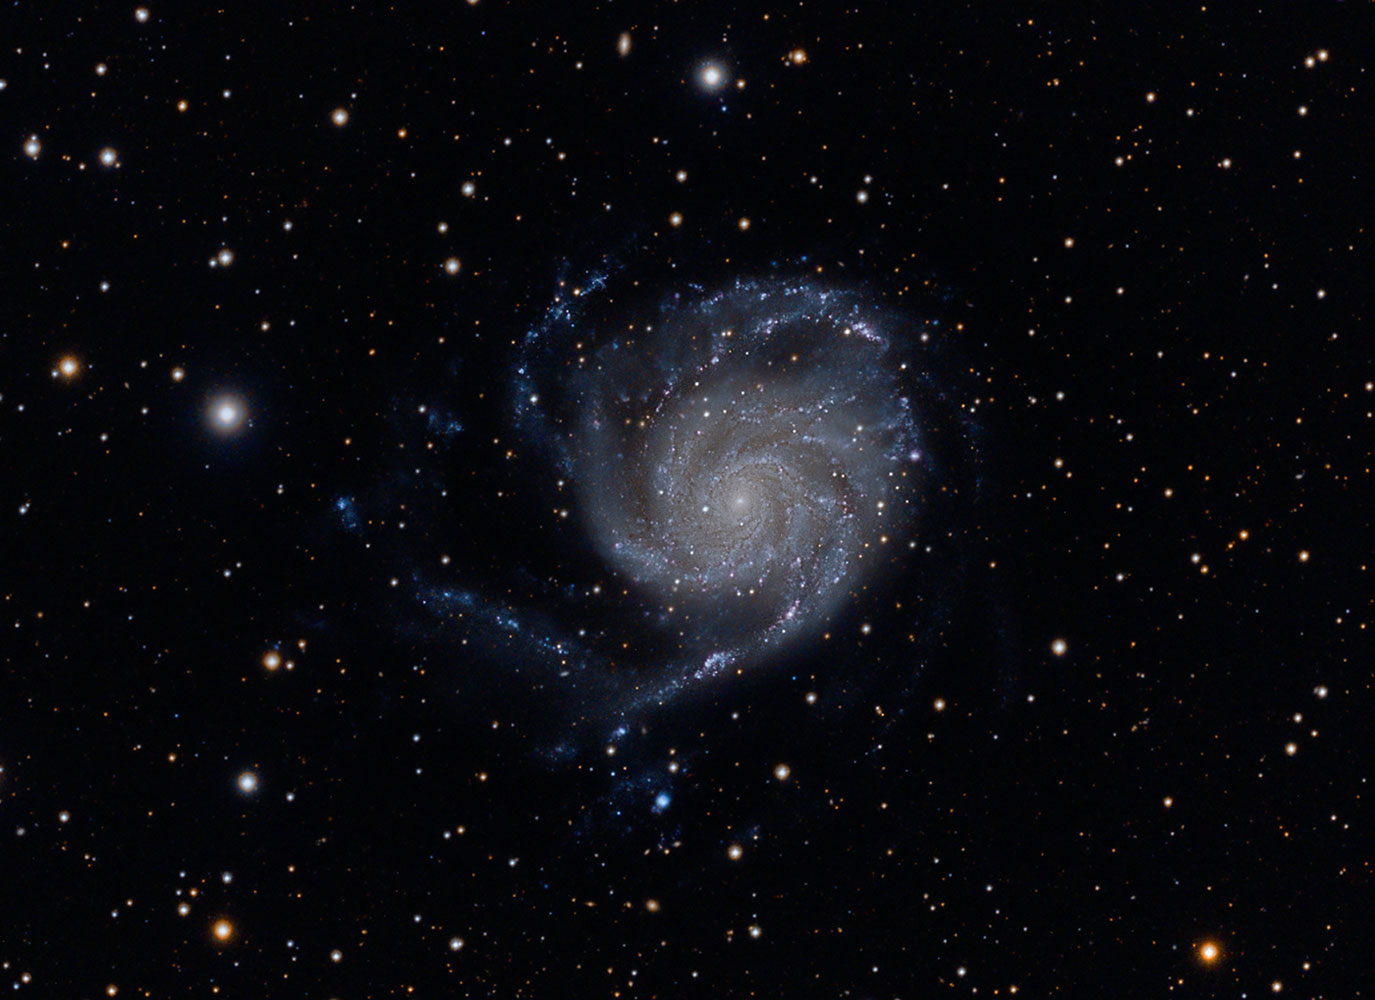 The Pinwheel Galaxy, also known as Messier 101, M101 or NGC 5457, taken at the Winter Star Party in the Florida Keys on March 1, 2014.